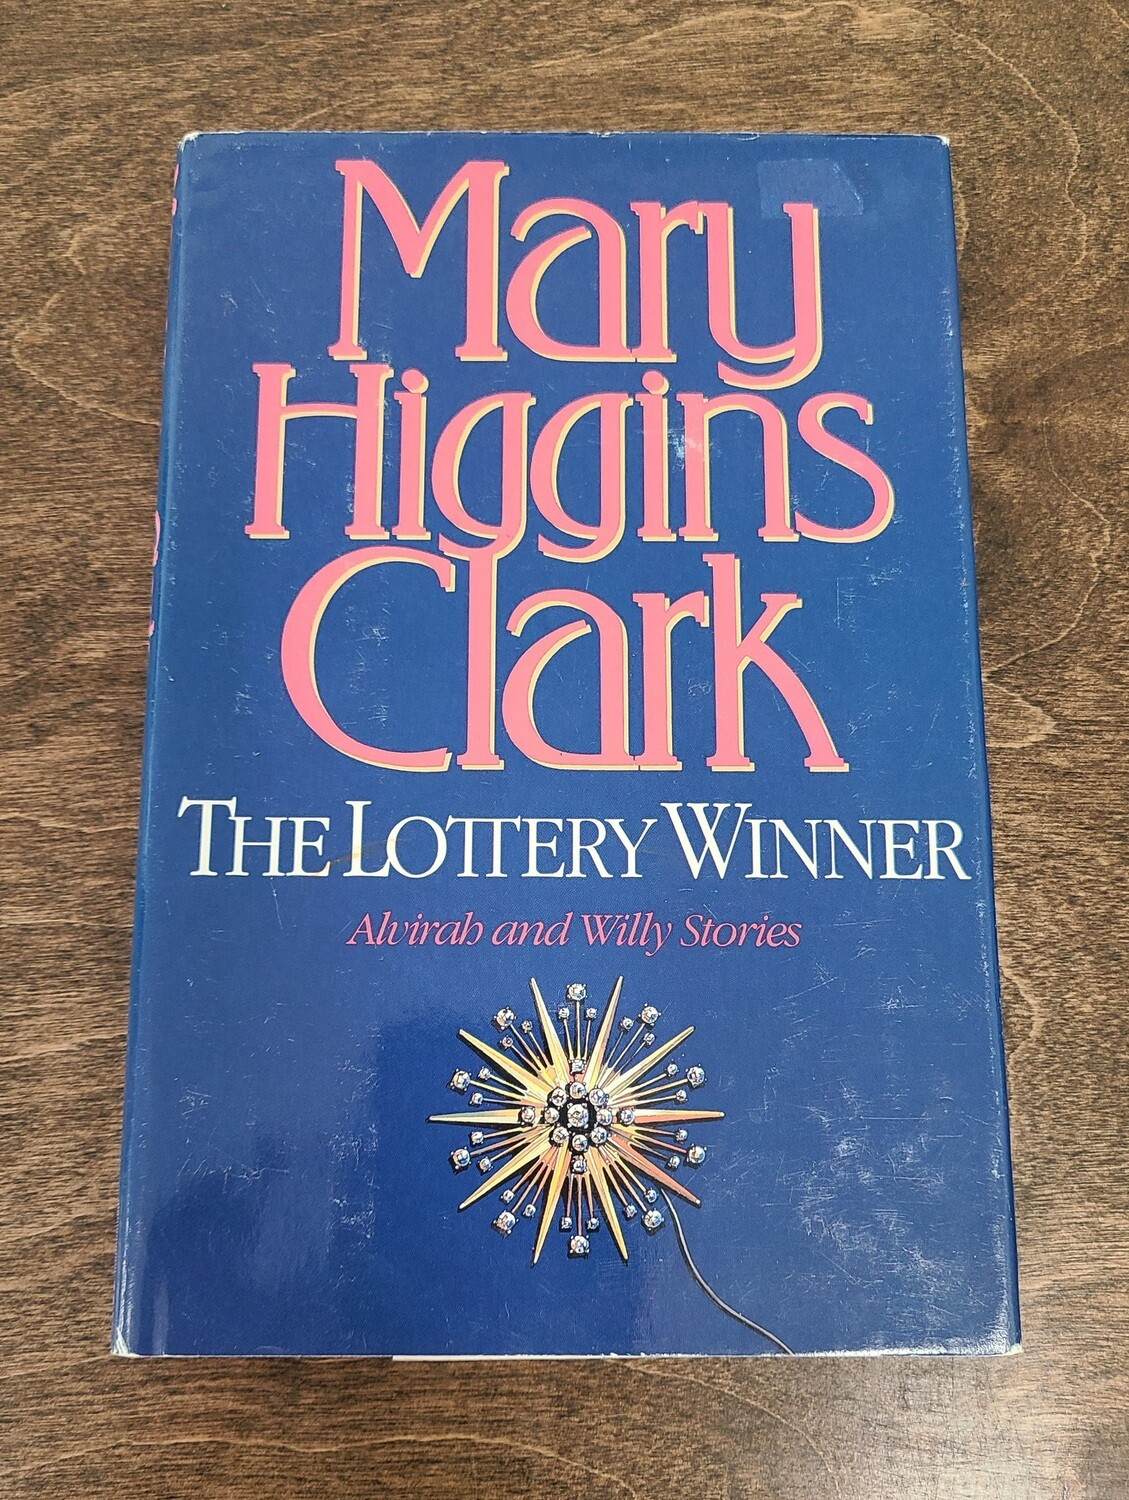 The Lottery Winner by Mary Higgins Clark